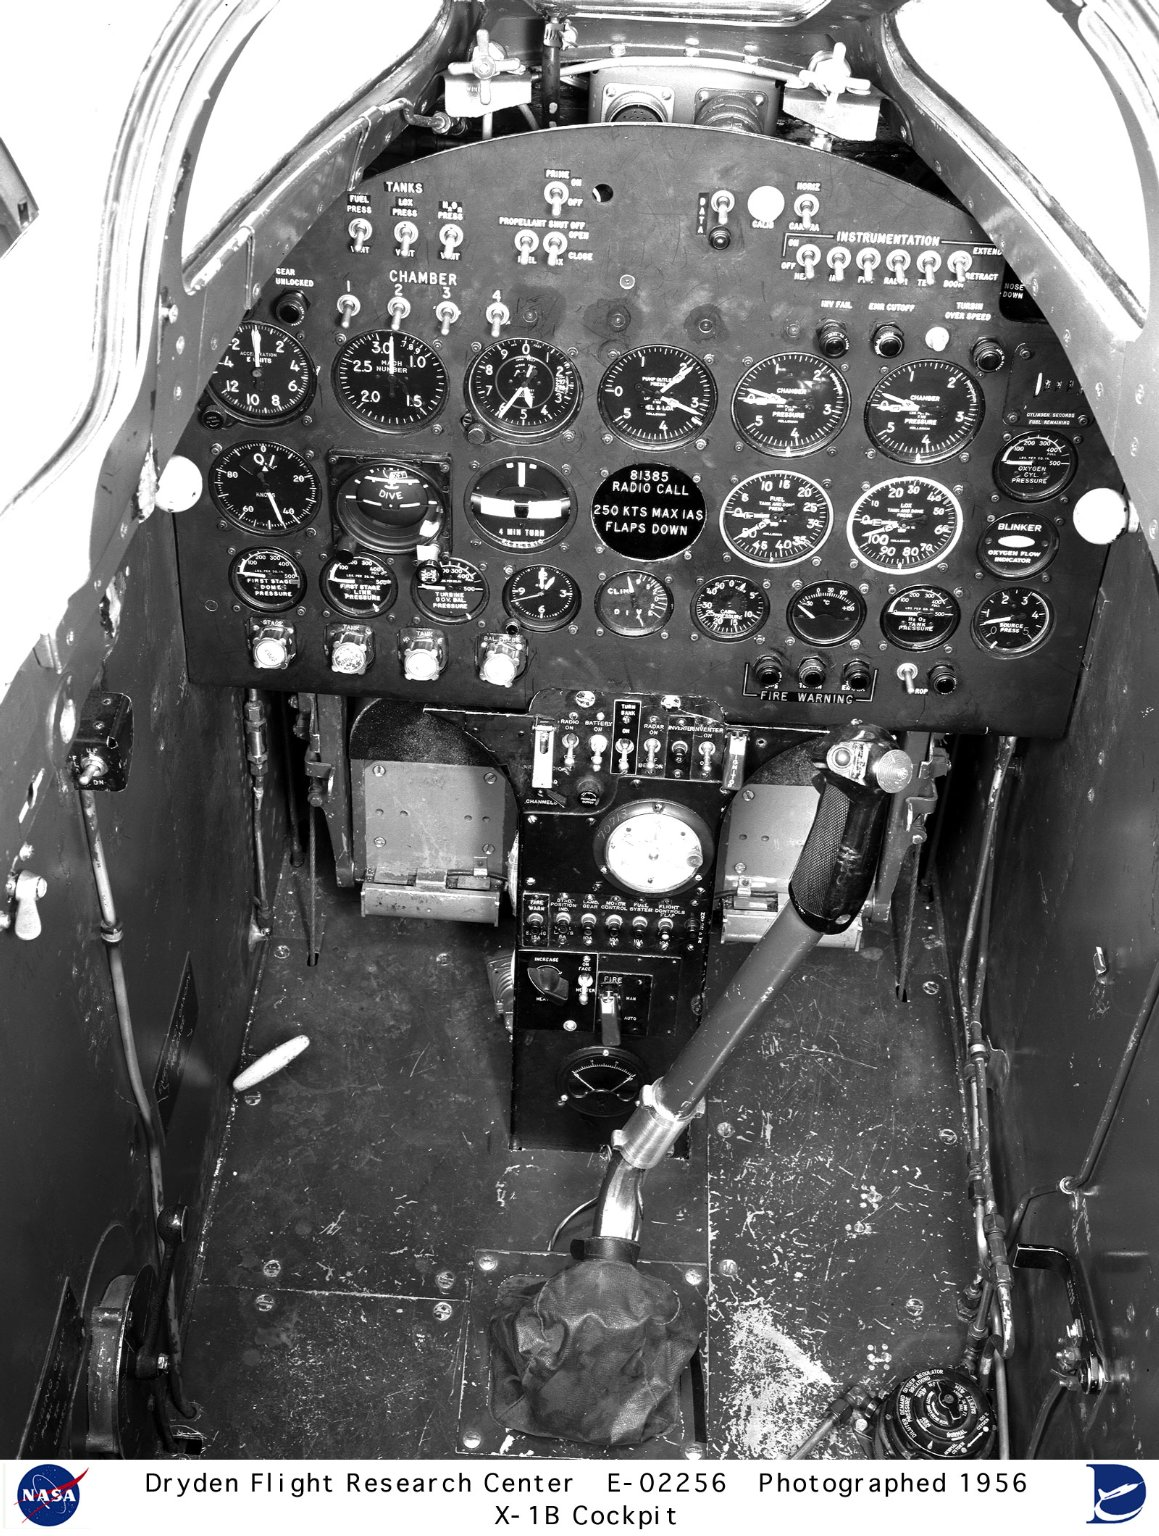 X-1B Aircraft Cockpit and Instrument Panel